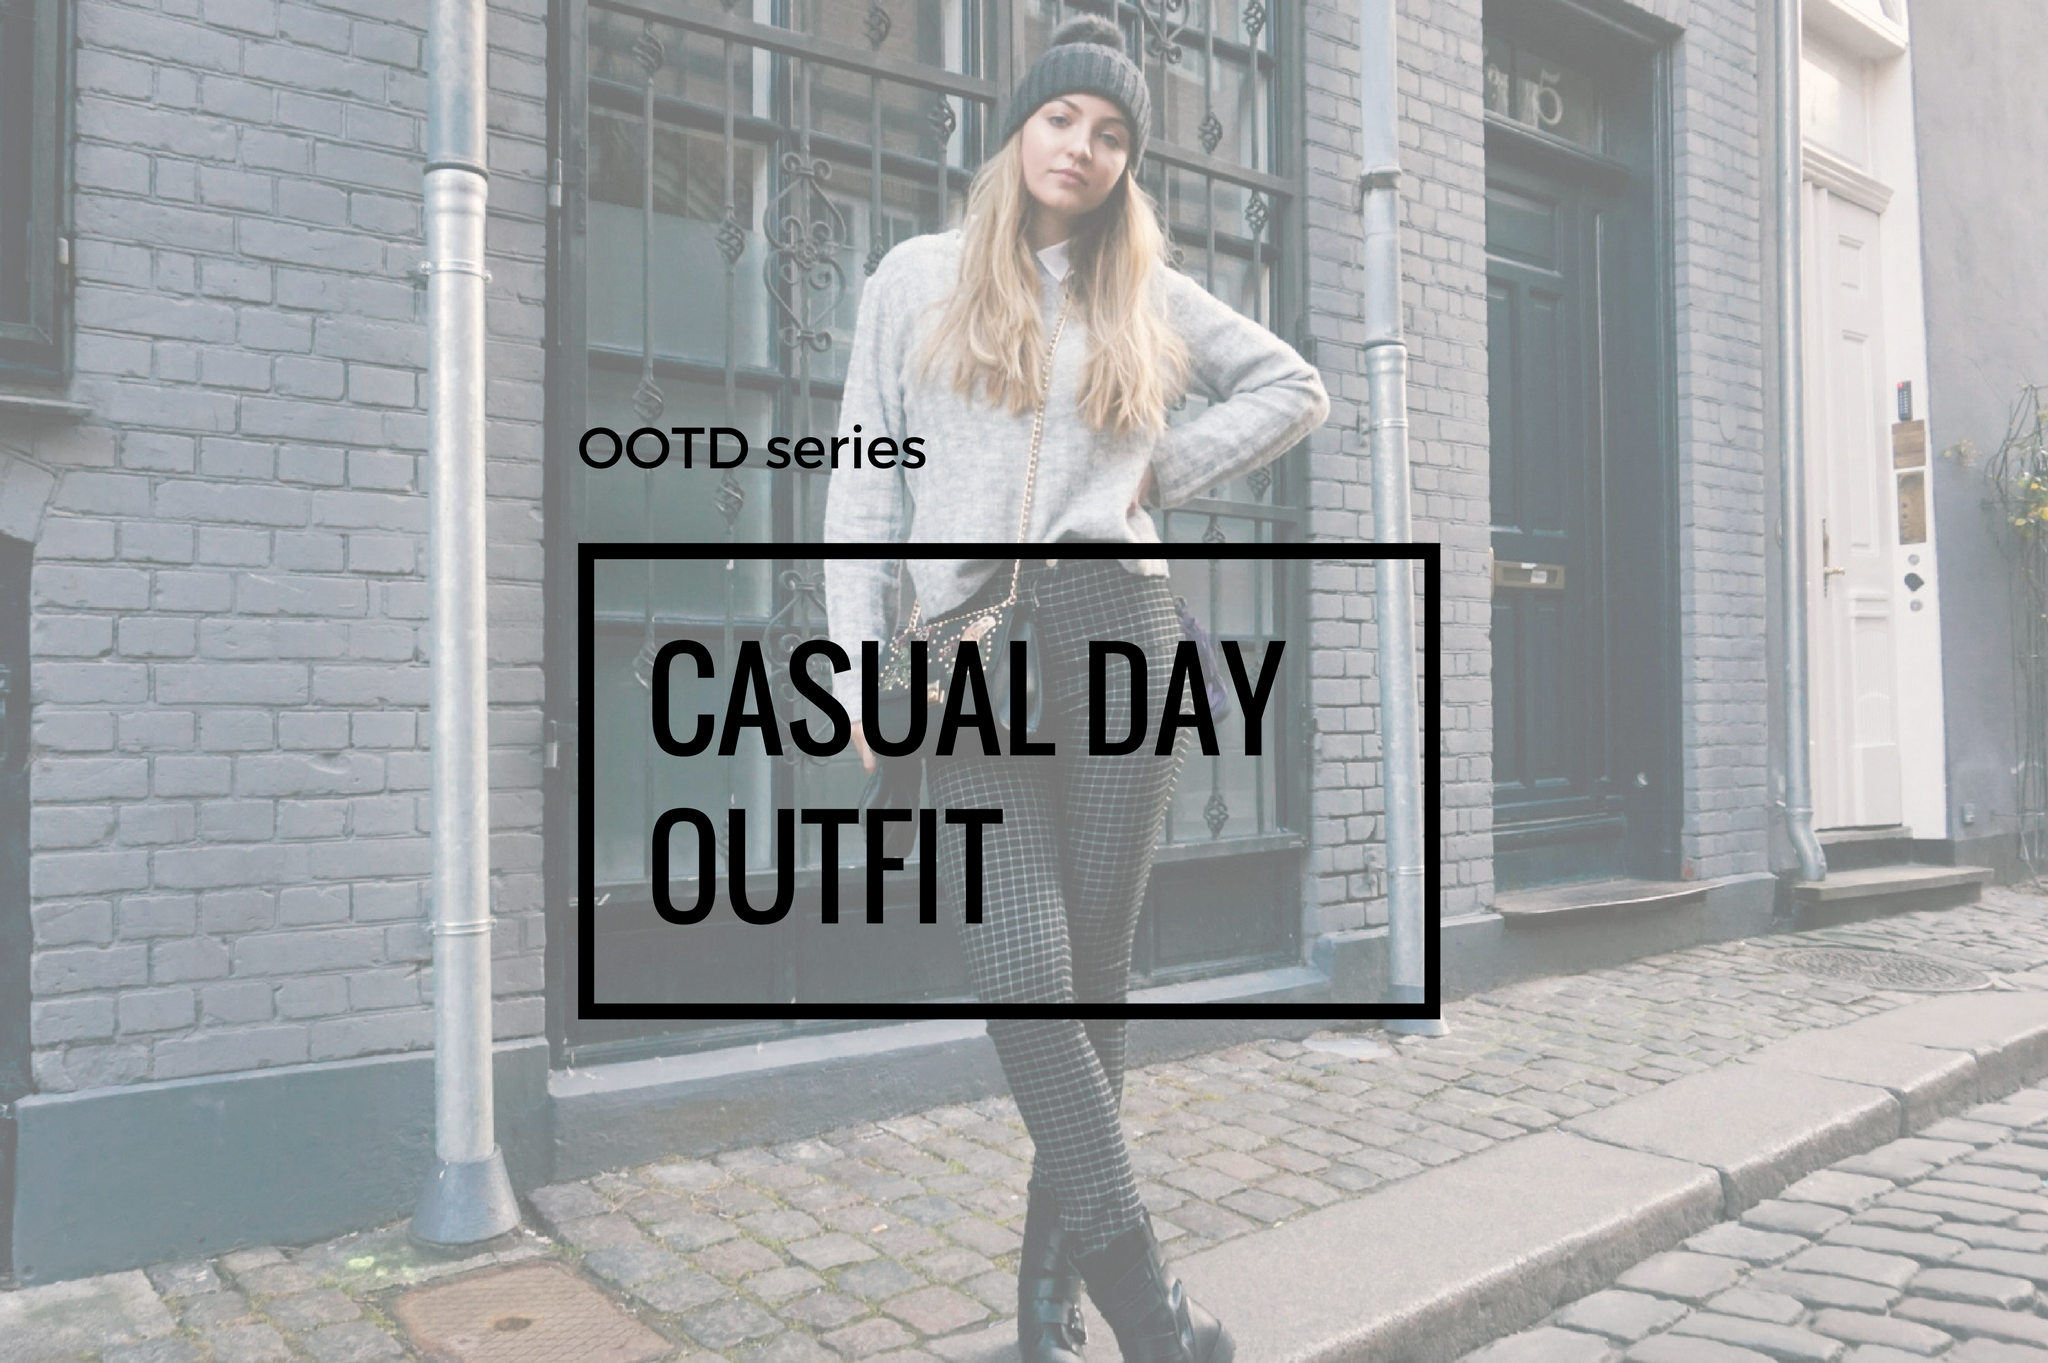 outfit of the day series featured image copenhagen